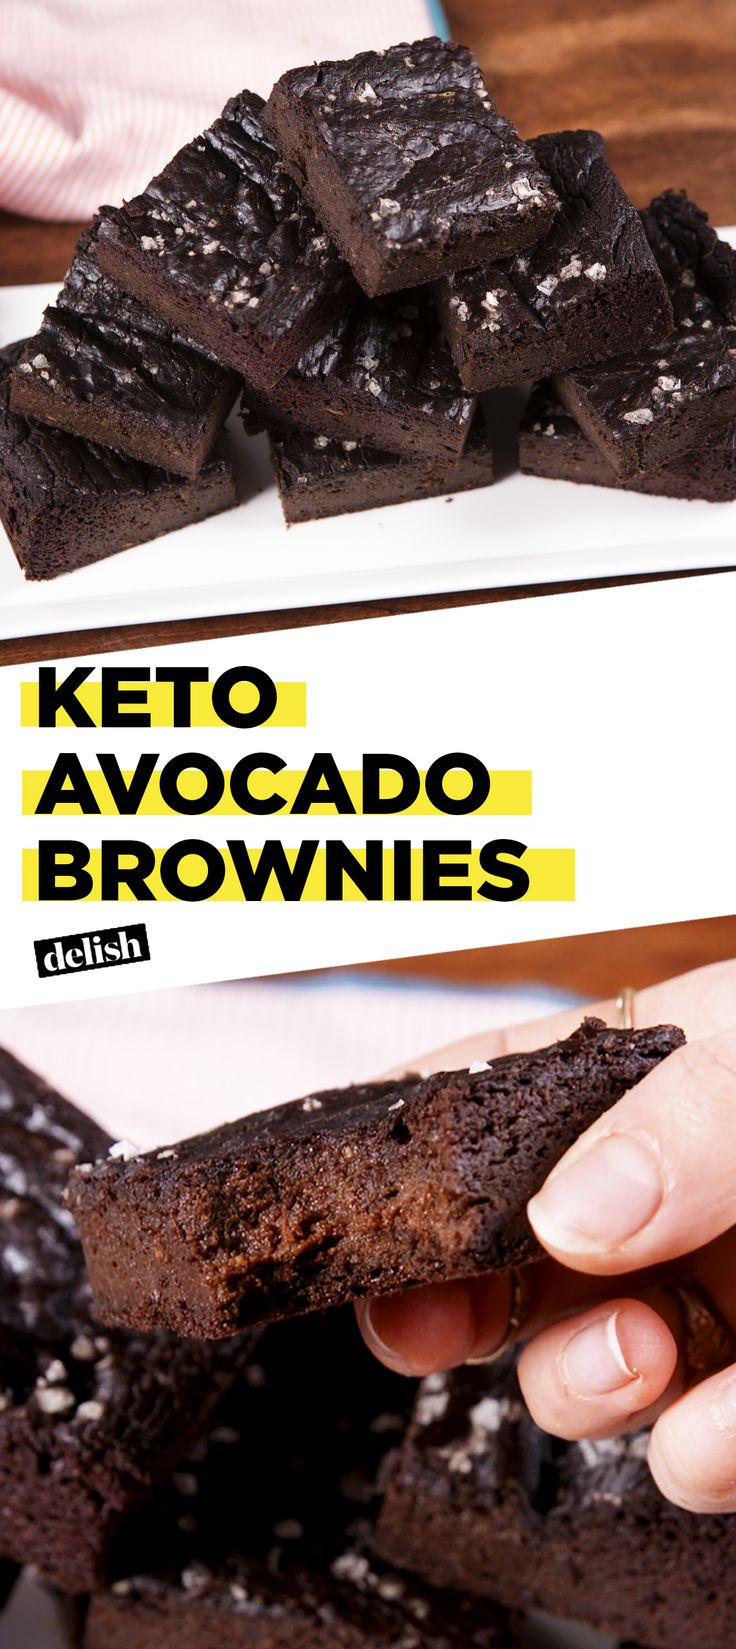 These Keto Avocado Brownies are a MUST for anyone on the keto diet. Get the recipe at Delish.com. maybe sub coconut sugar with Swerve.